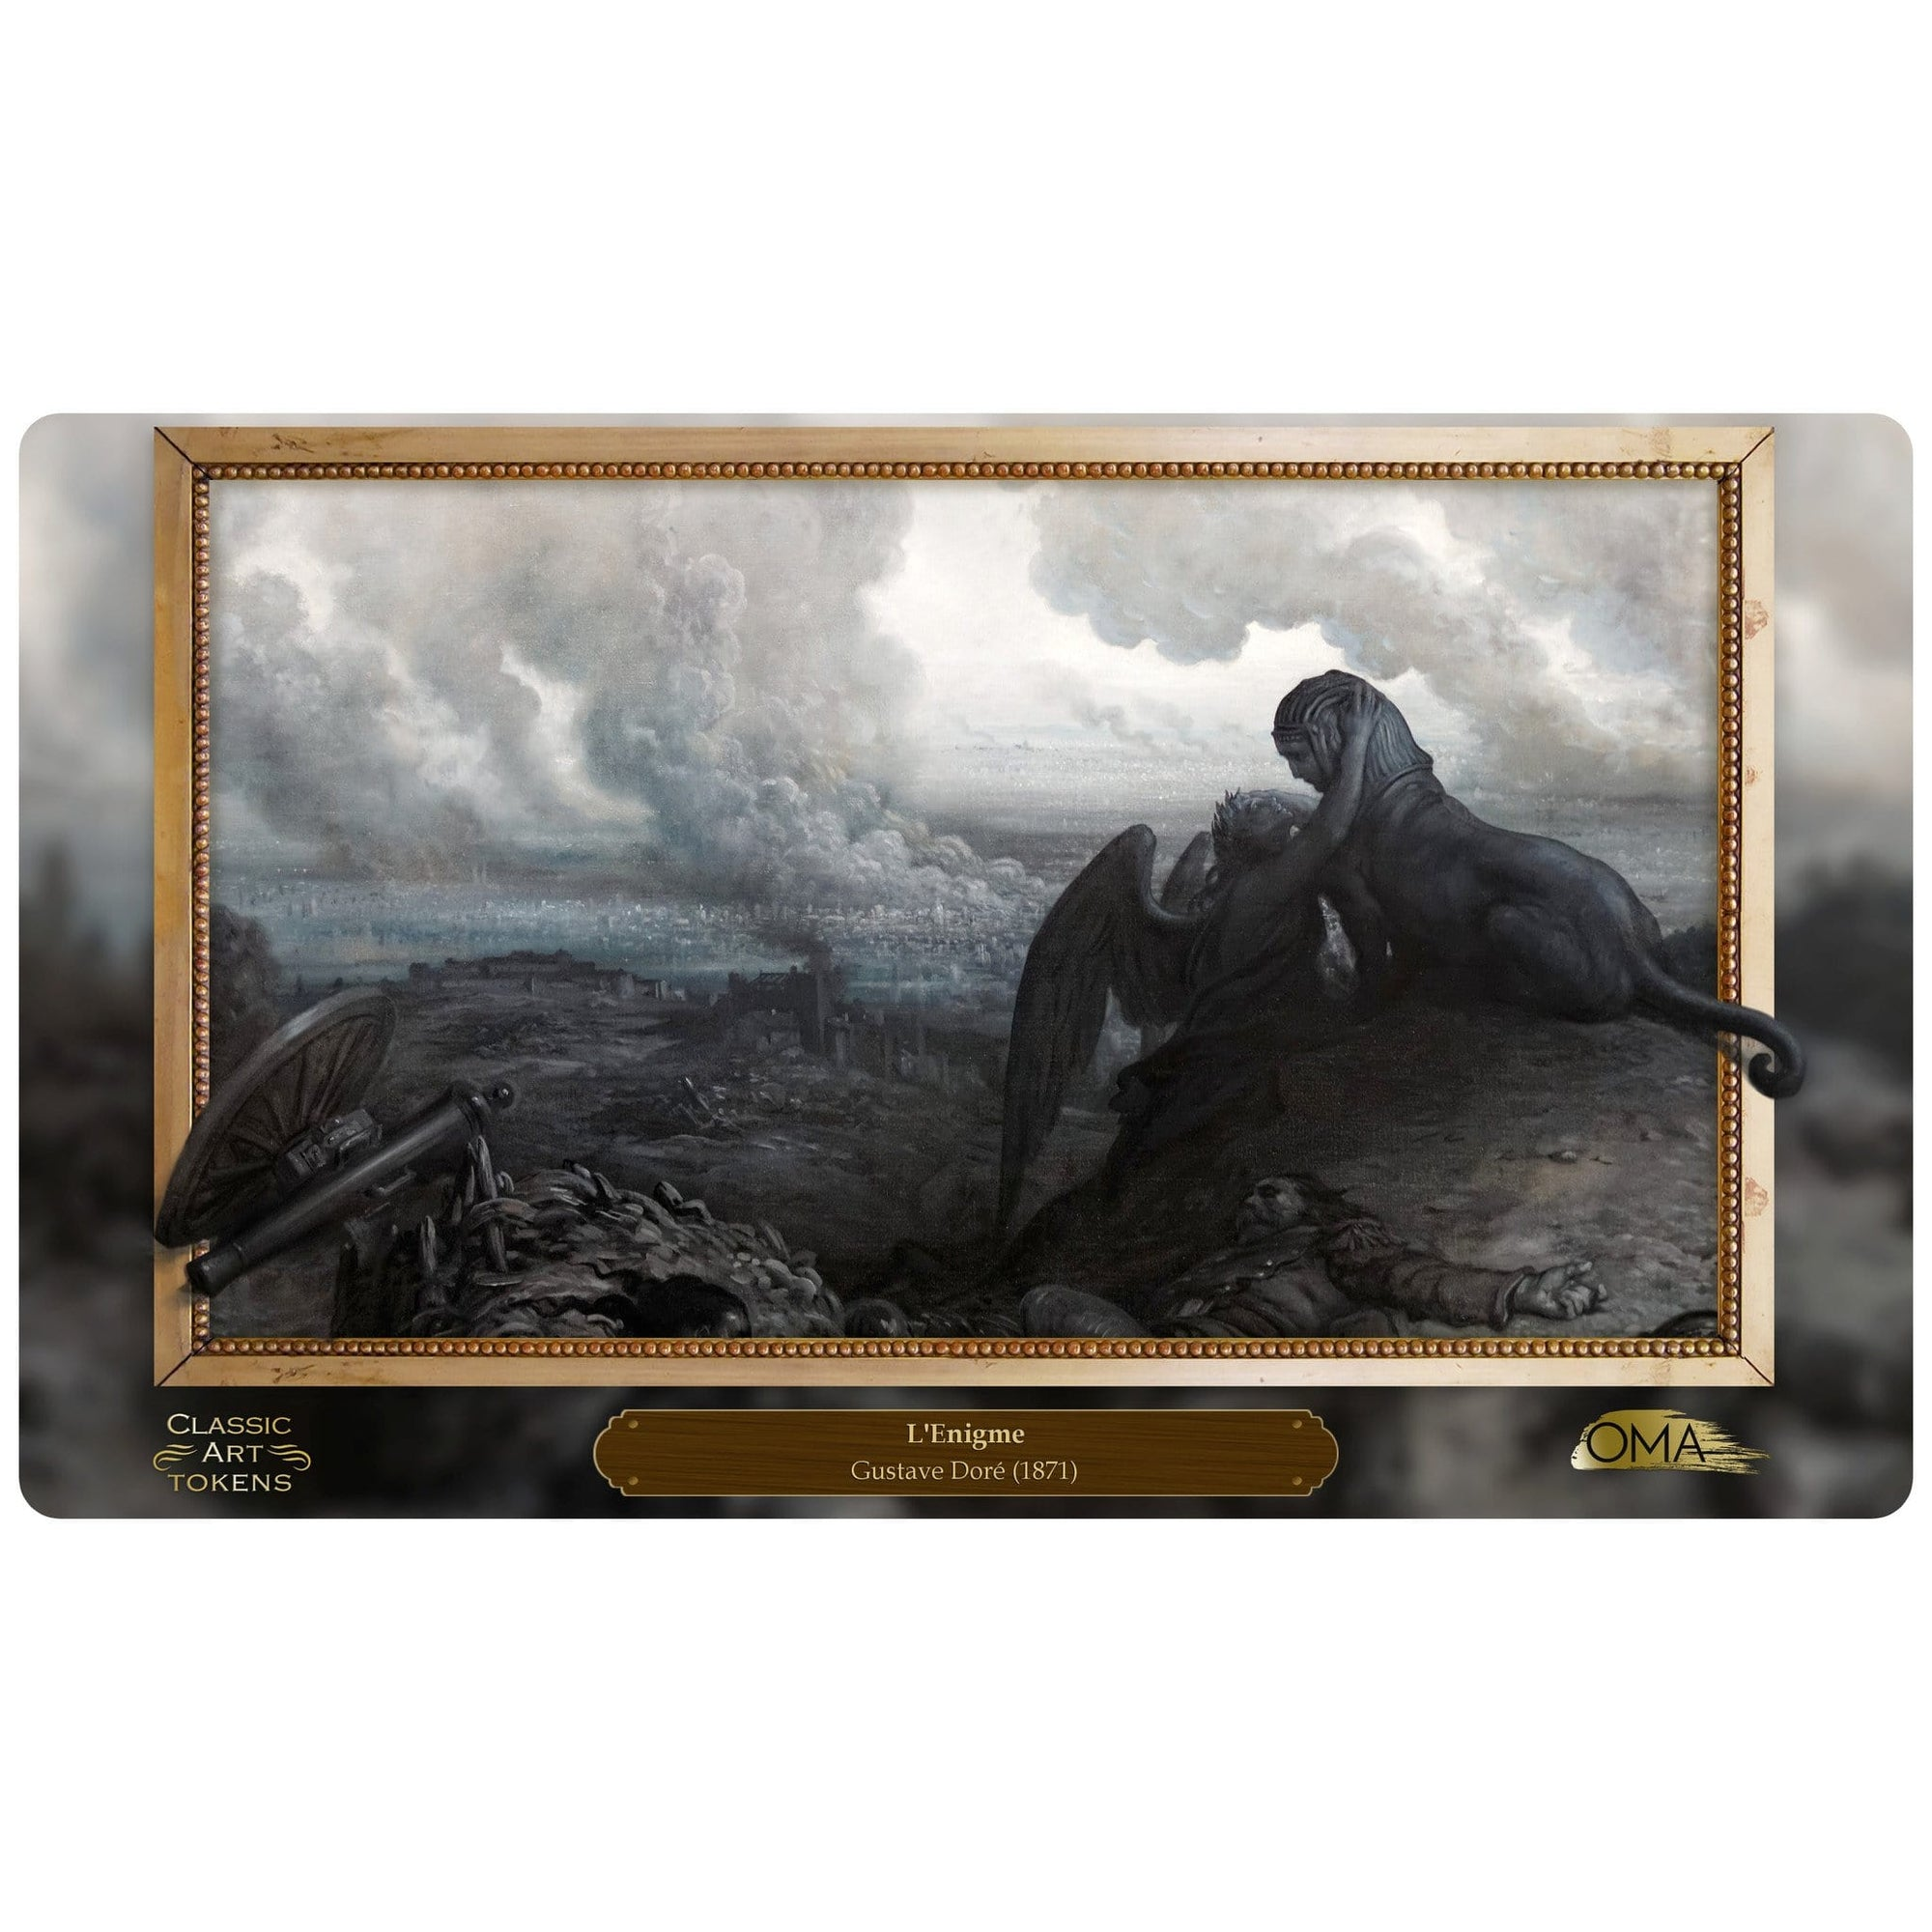 Carnage Playmat by Gustave Doré - Playmat - Original Magic Art - Accessories for Magic the Gathering and other card games